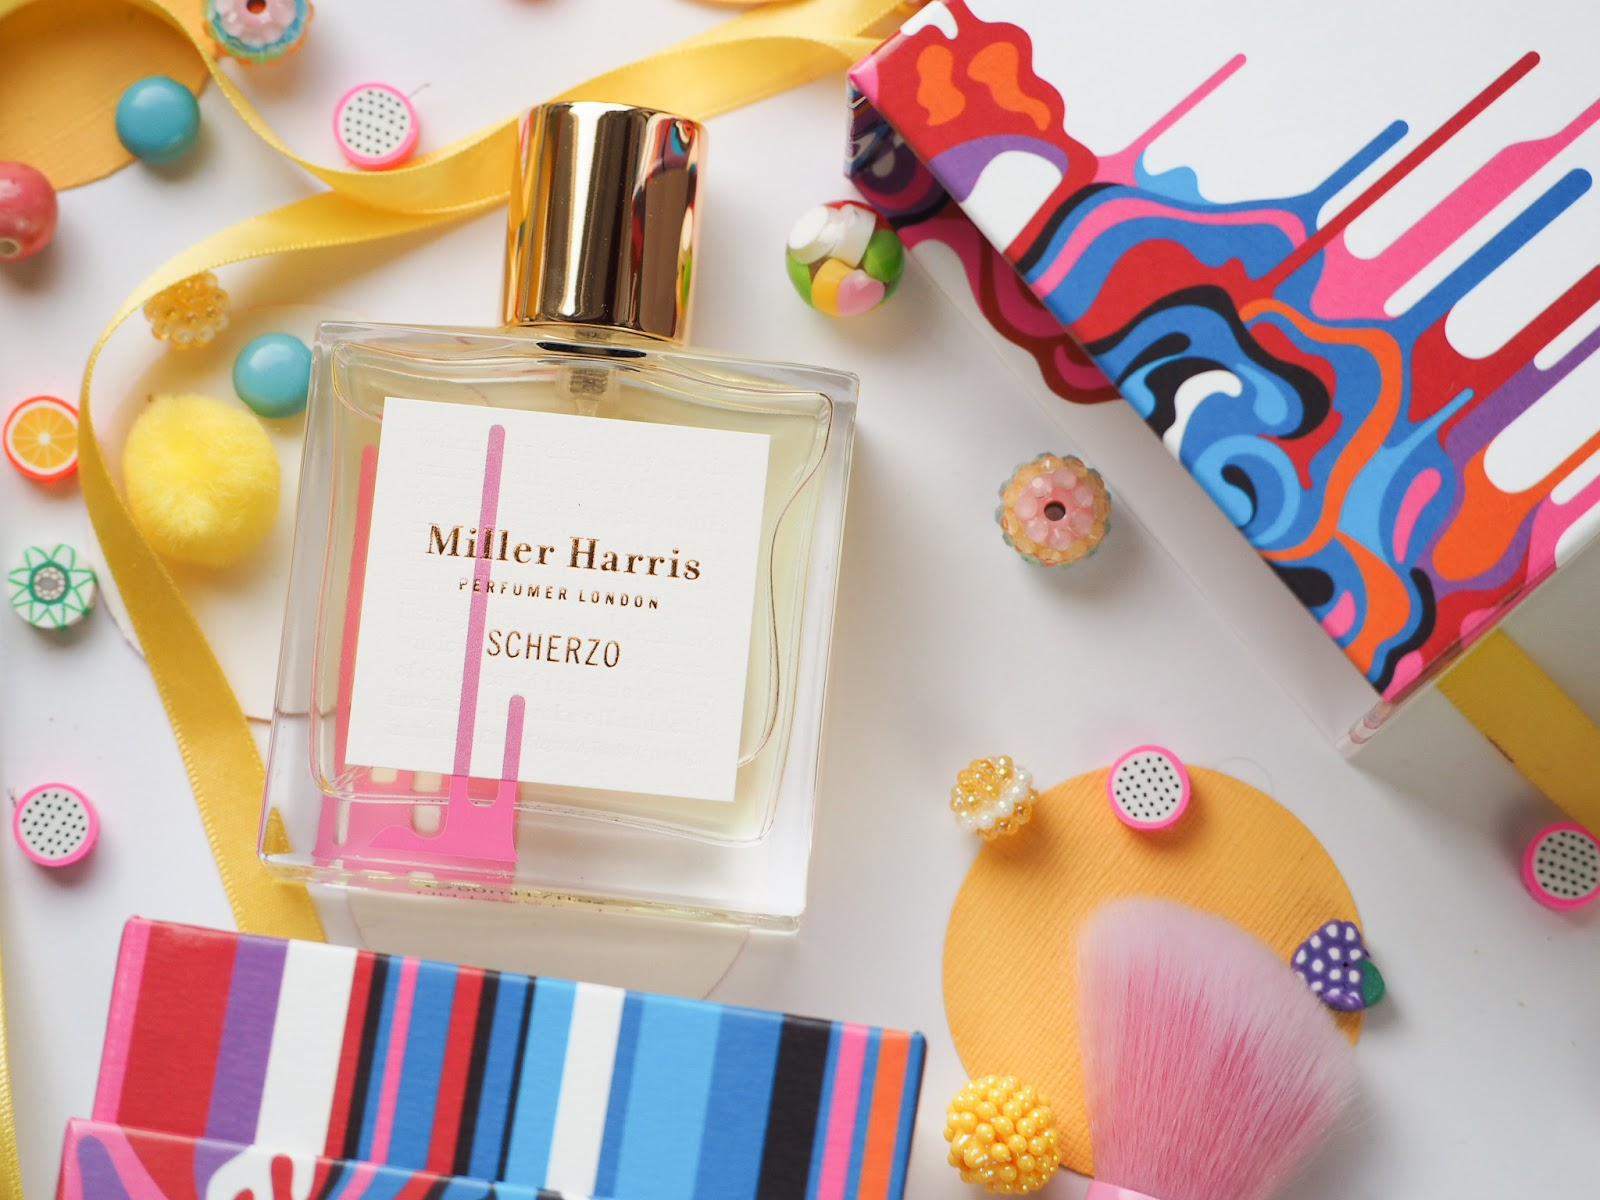 World Duty Free: Miller Harris Scherzo Perfume*